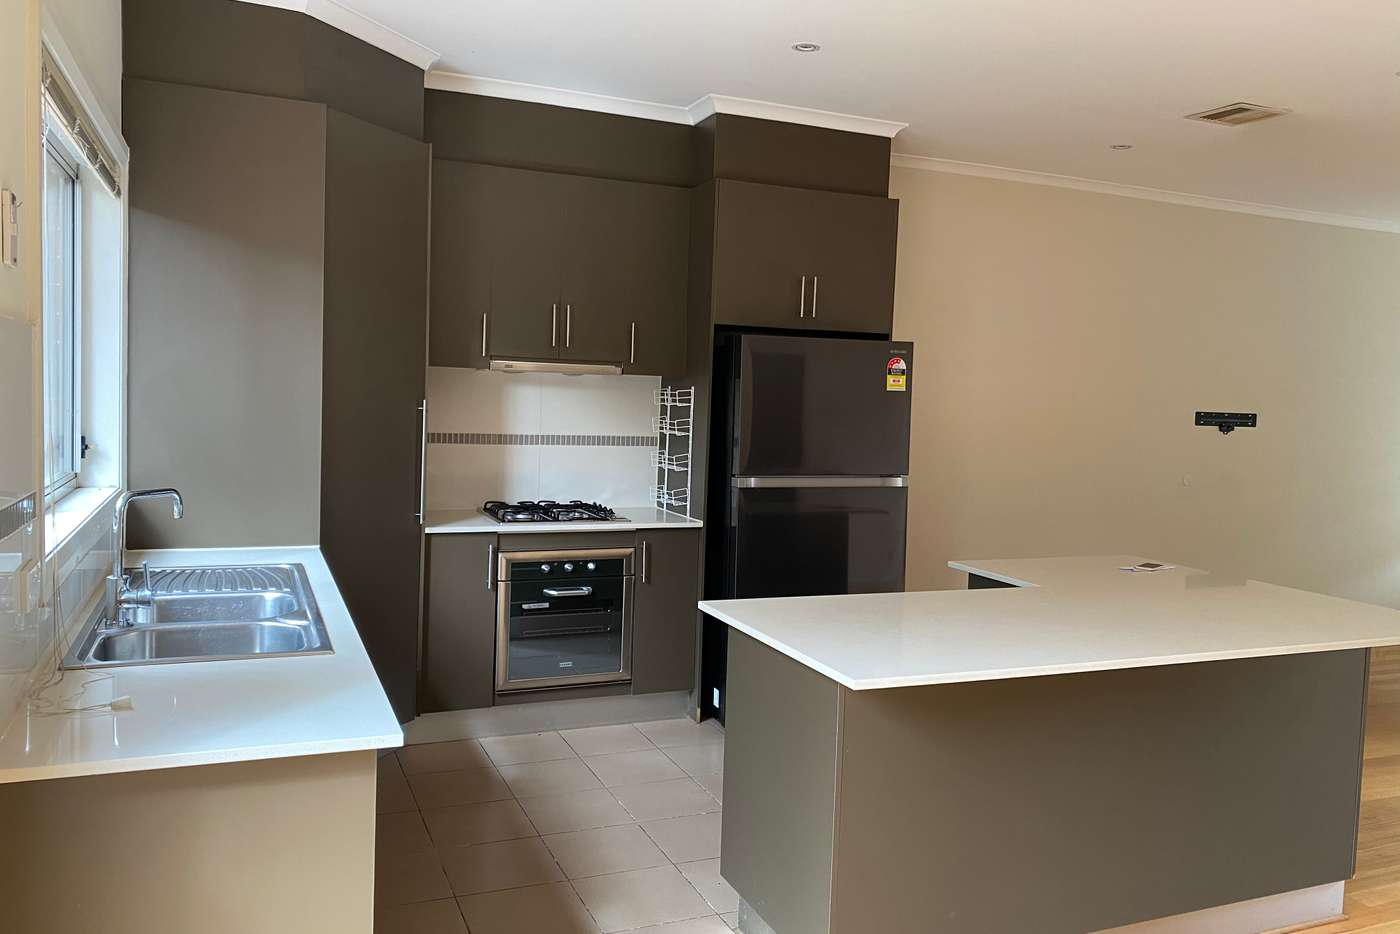 Main view of Homely townhouse listing, 8/21 Waratah Street, West Footscray VIC 3012